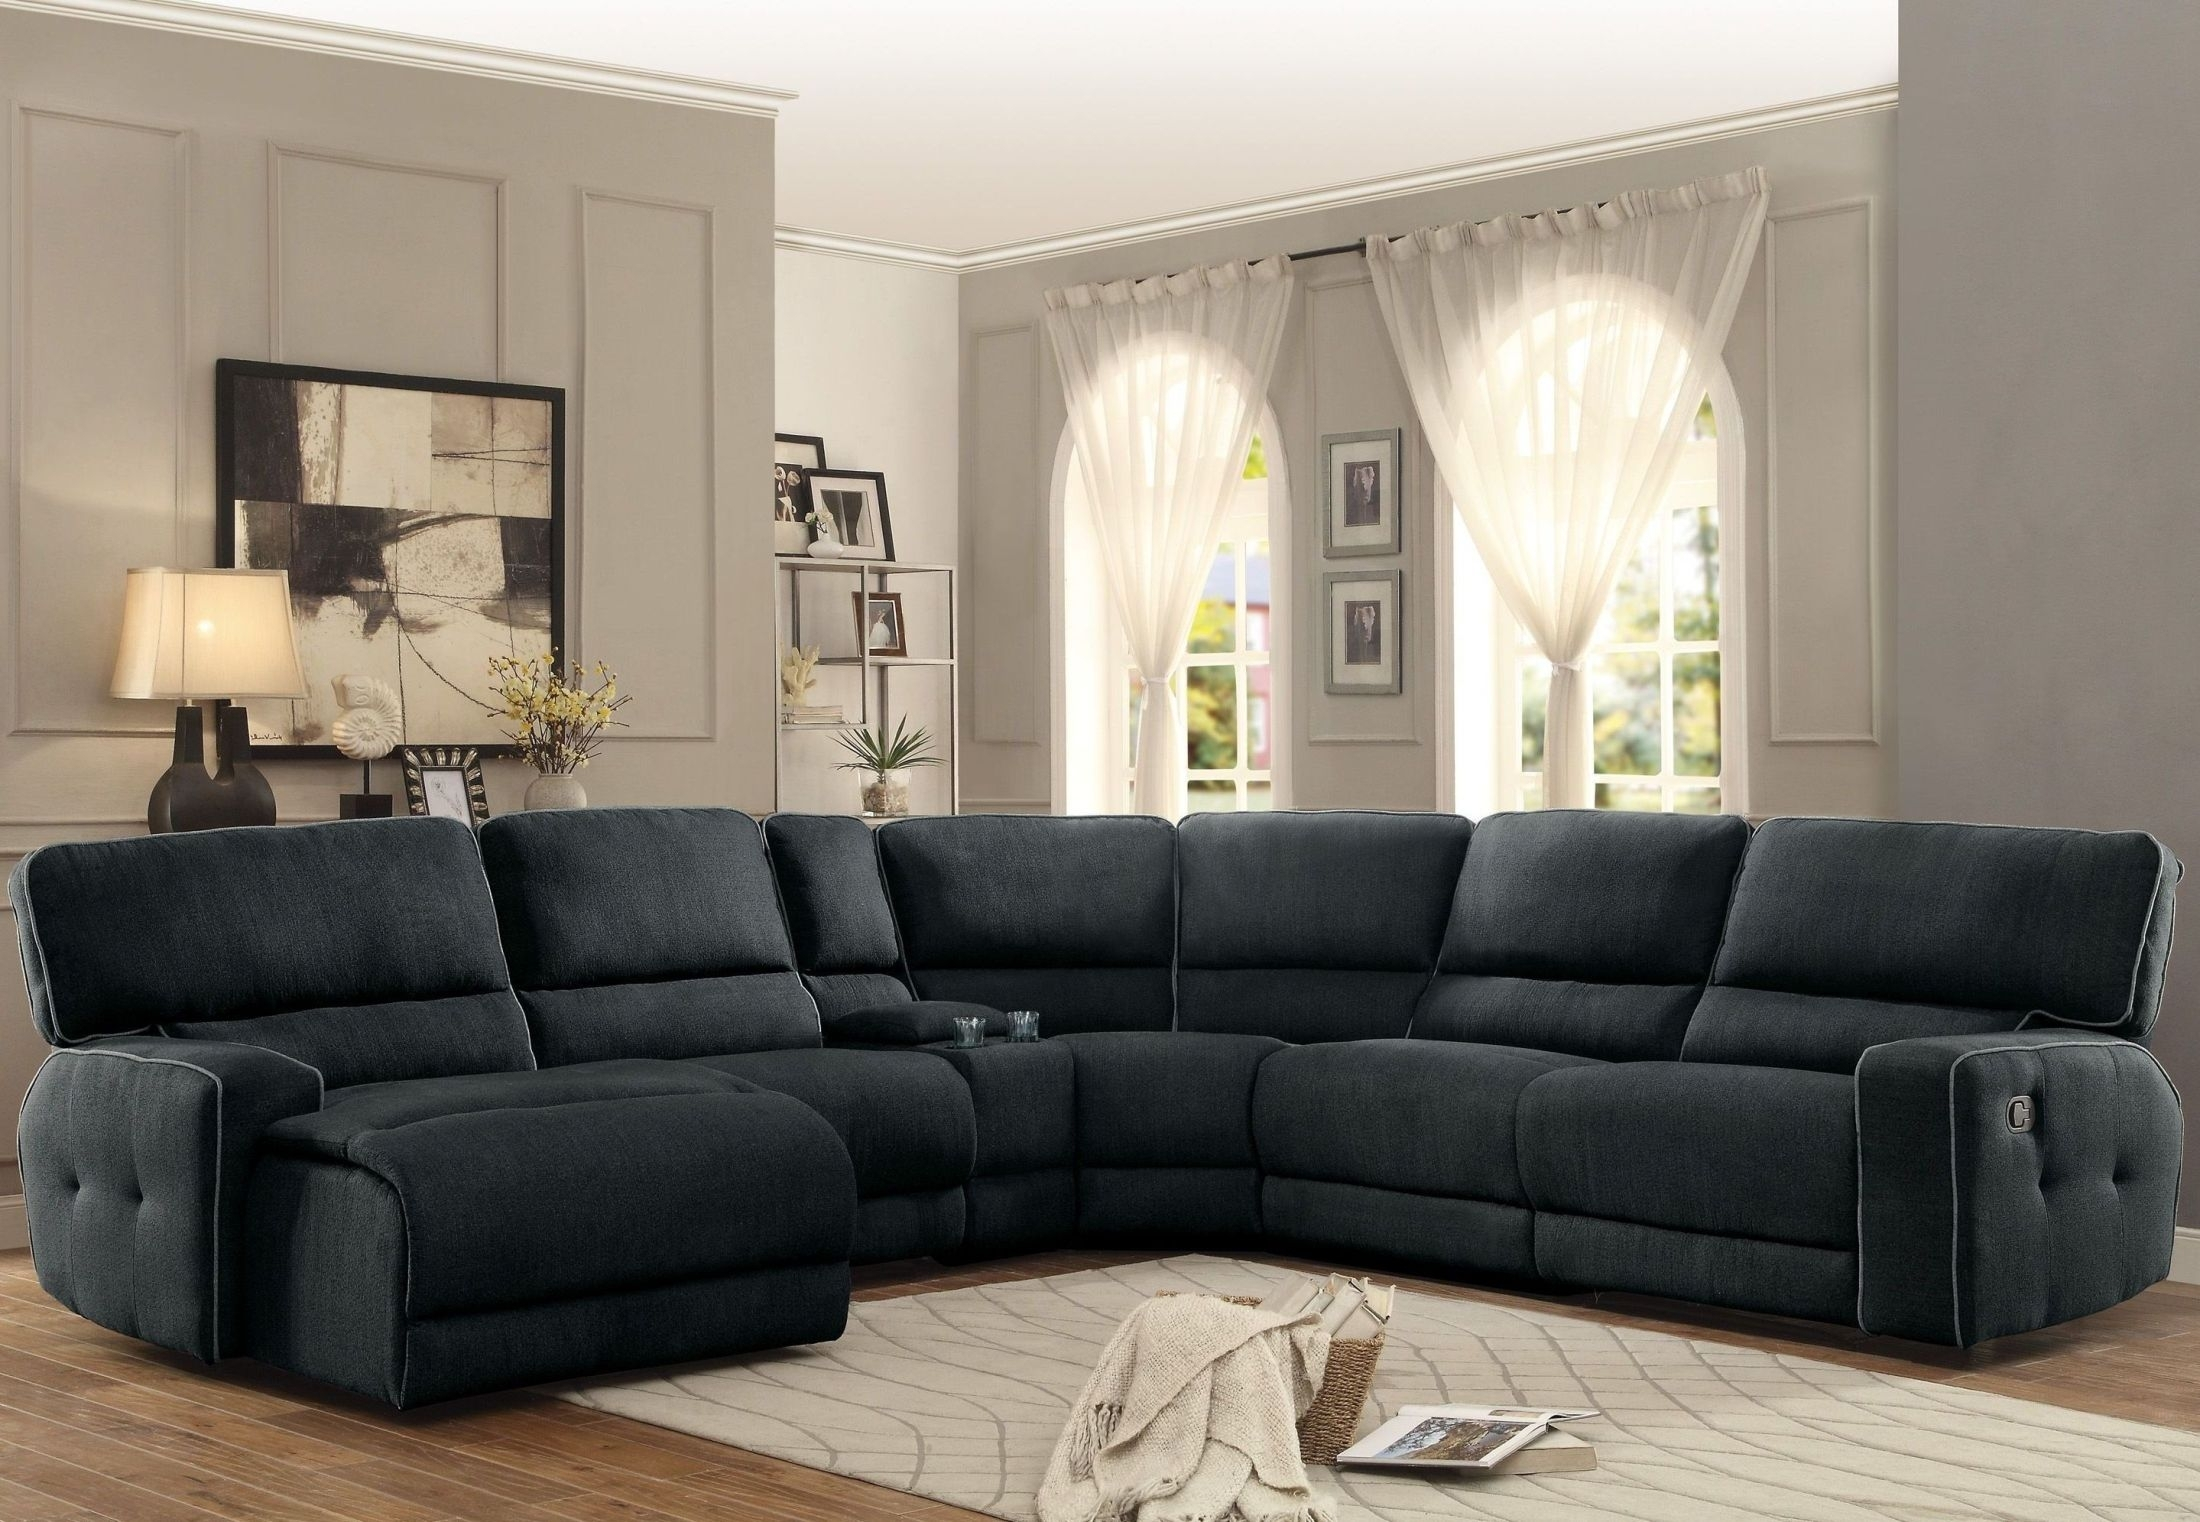 Furnitureetc | Furniture & More Keamey Gray Laf Reclining Sectional In Avery 2 Piece Sectionals With Laf Armless Chaise (View 21 of 25)